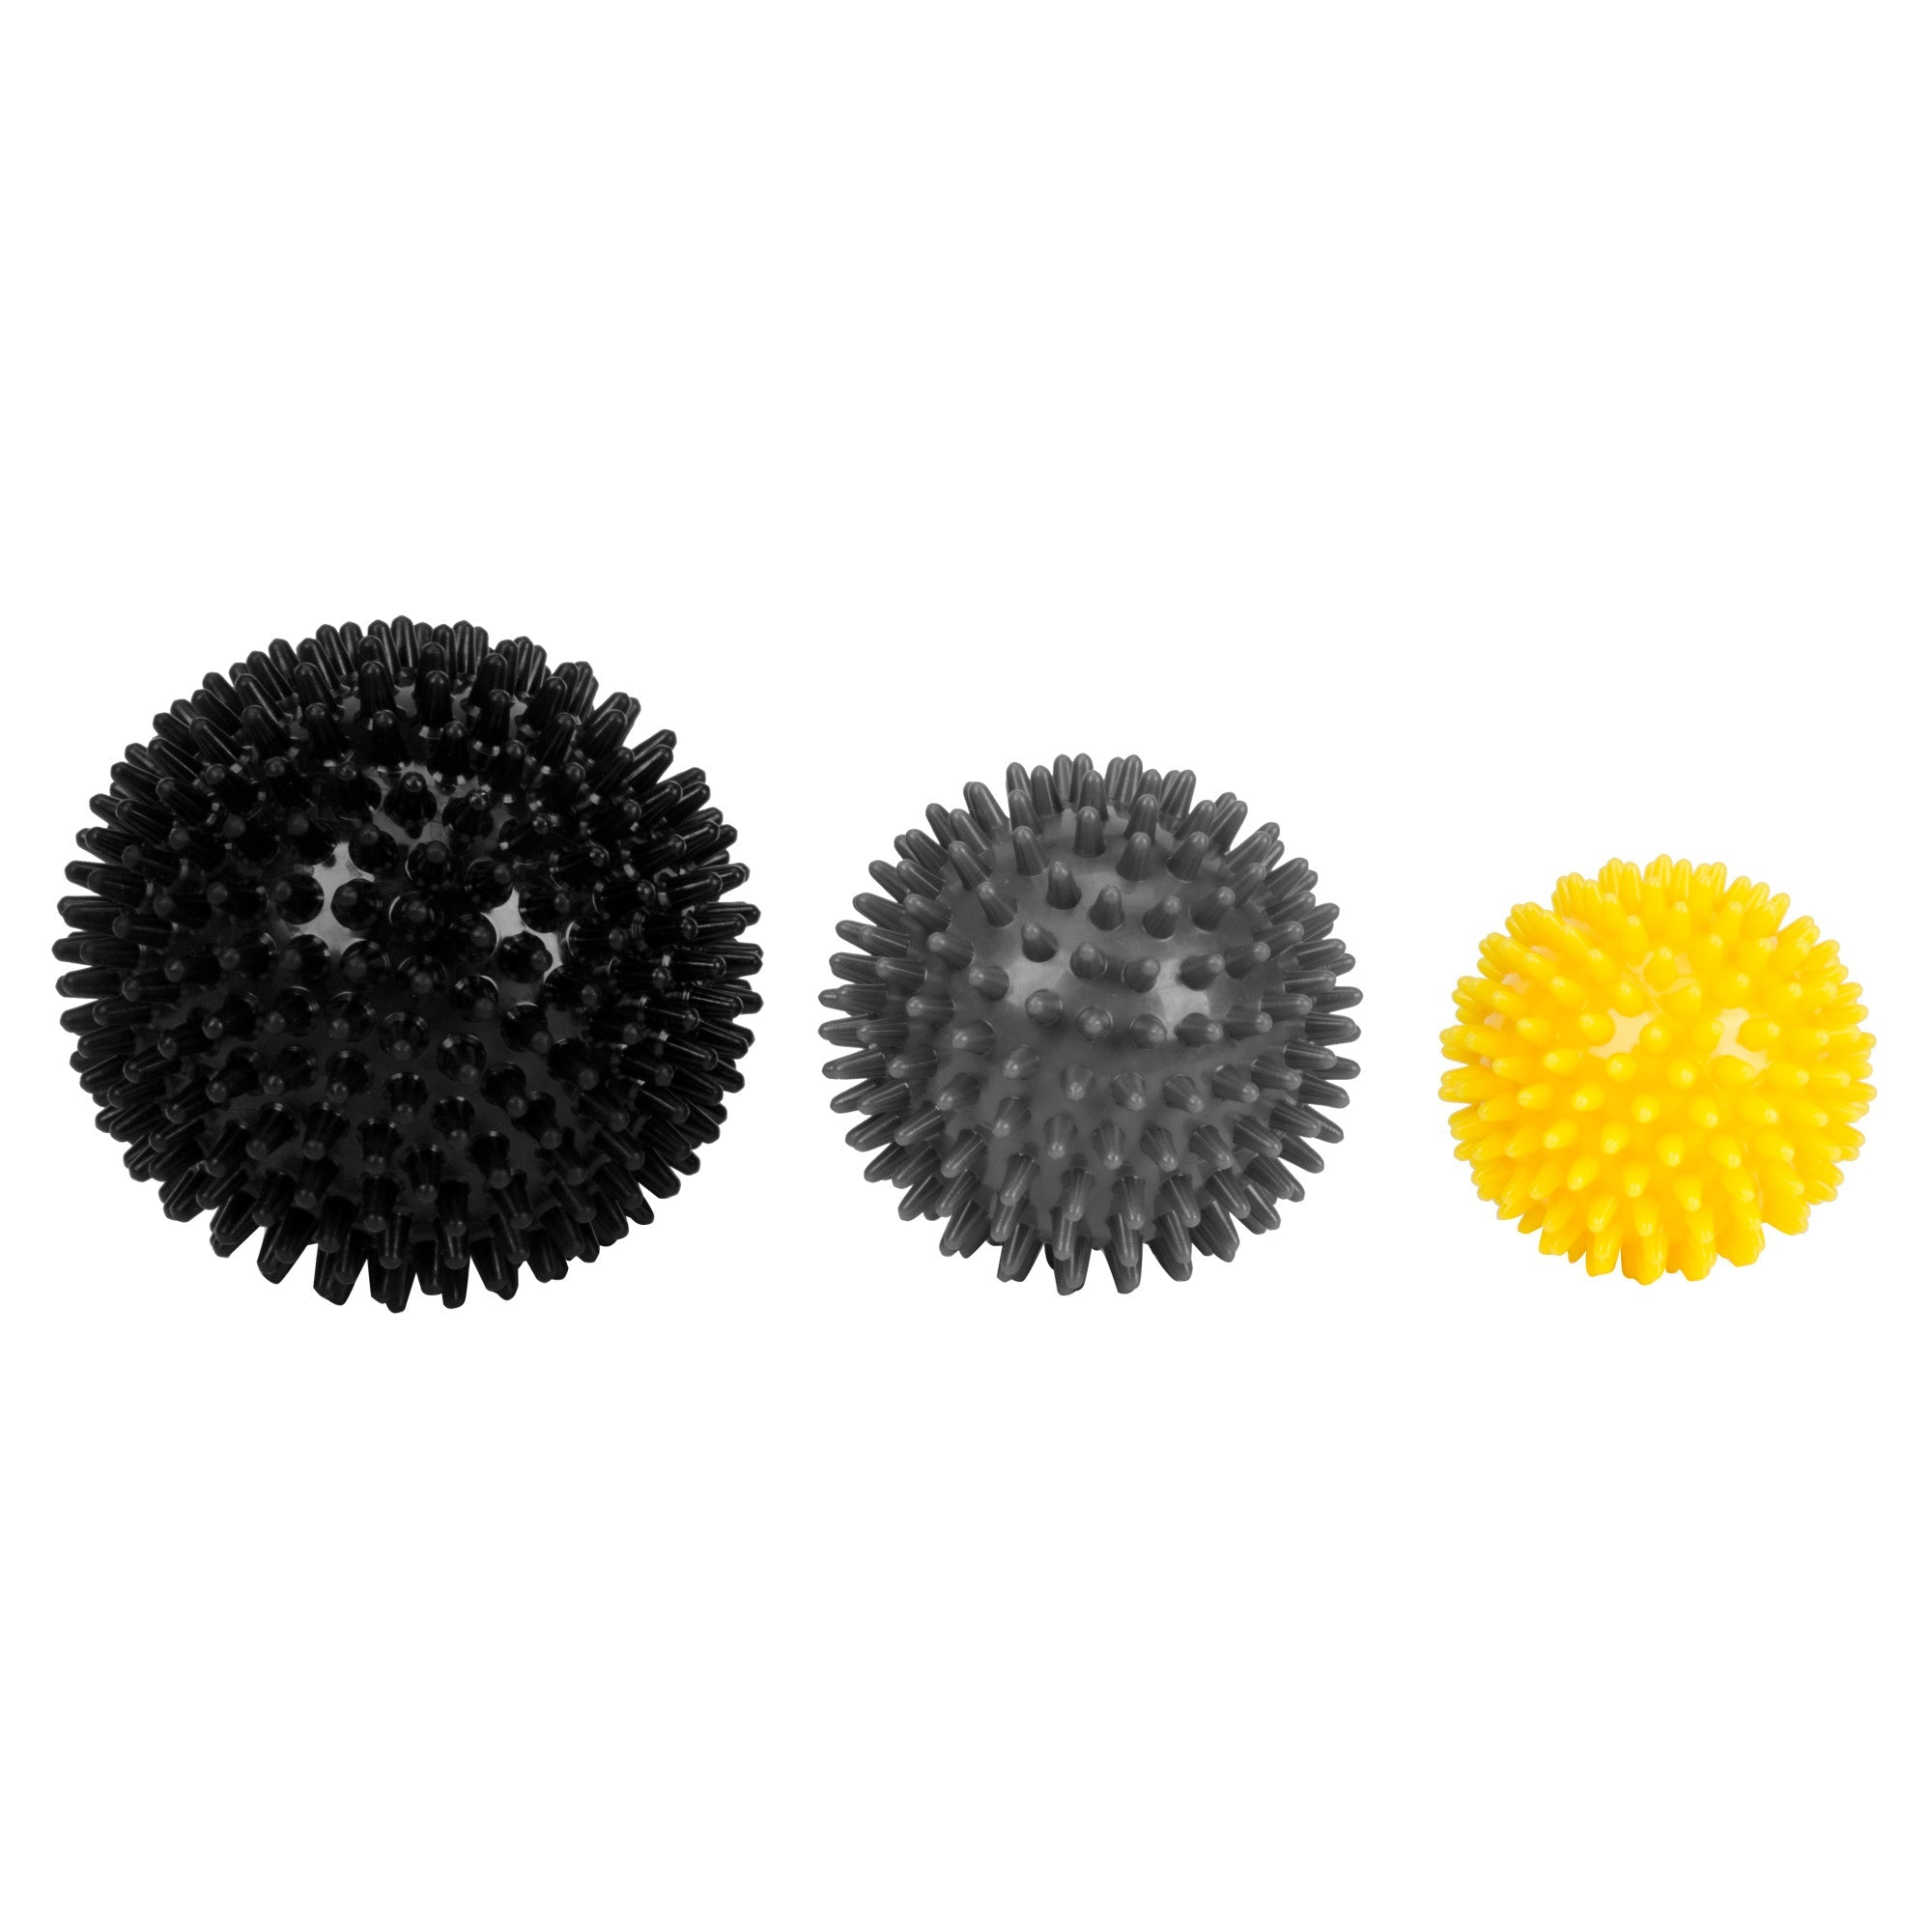 Everlast Massage Ball Kit Set of 3 by Everlast Canada